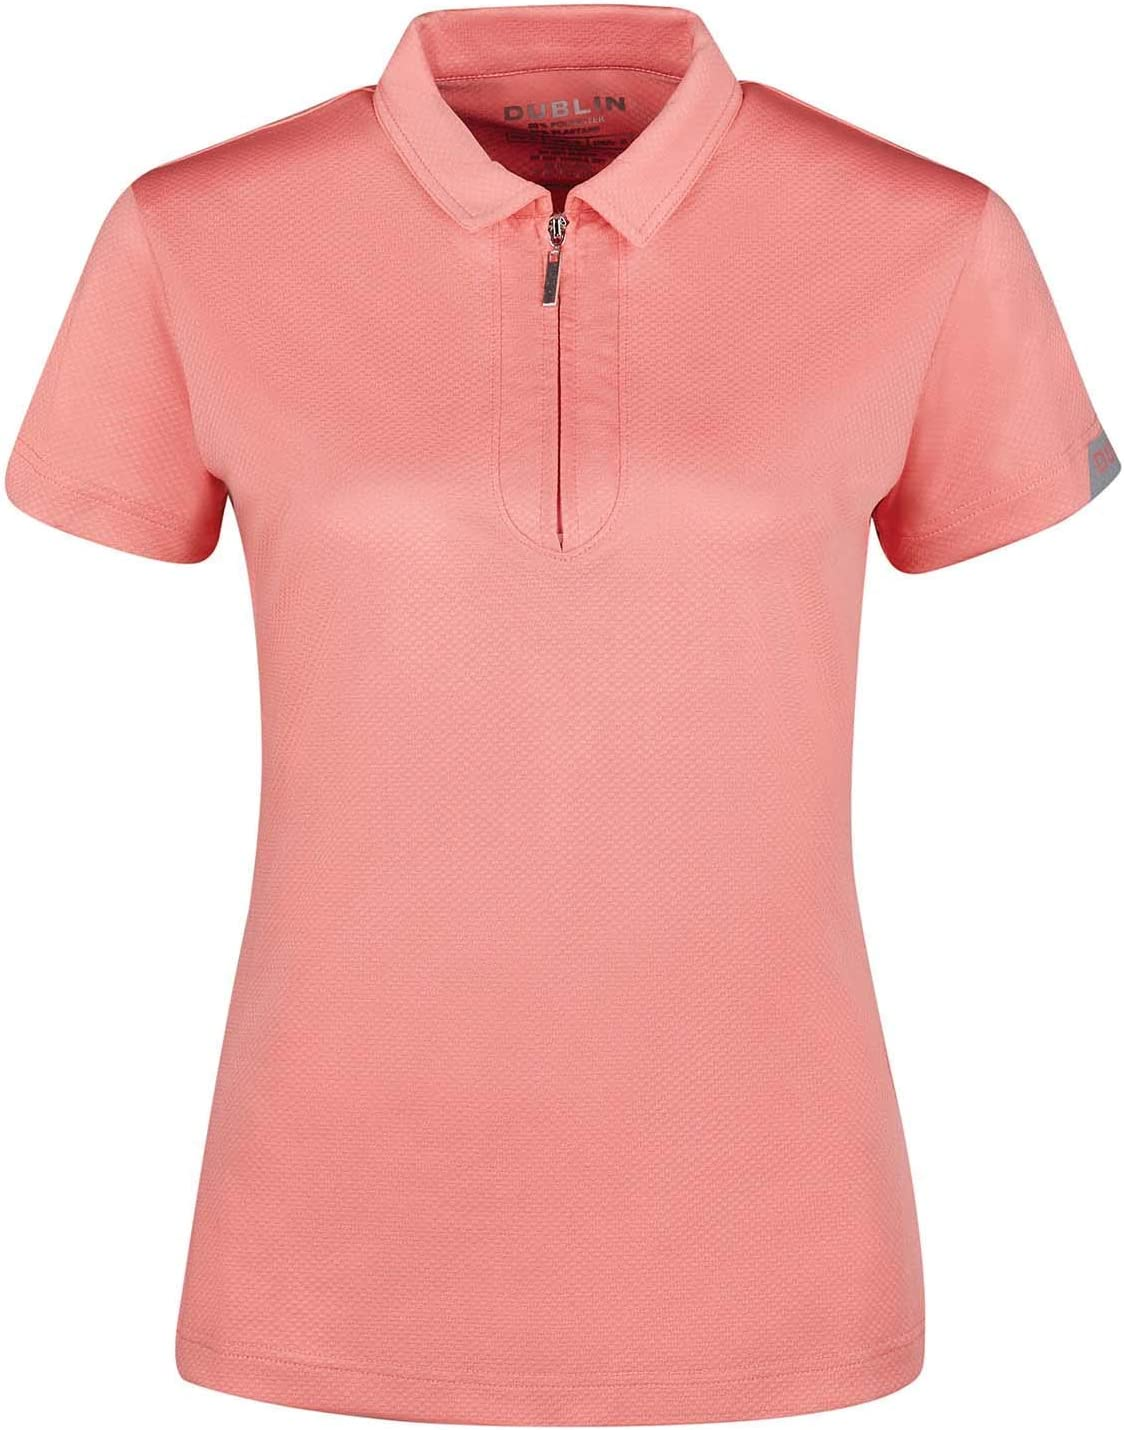 Dublin Polo Mujer Columba Tech Manga Corta Rosa: Amazon.es ...